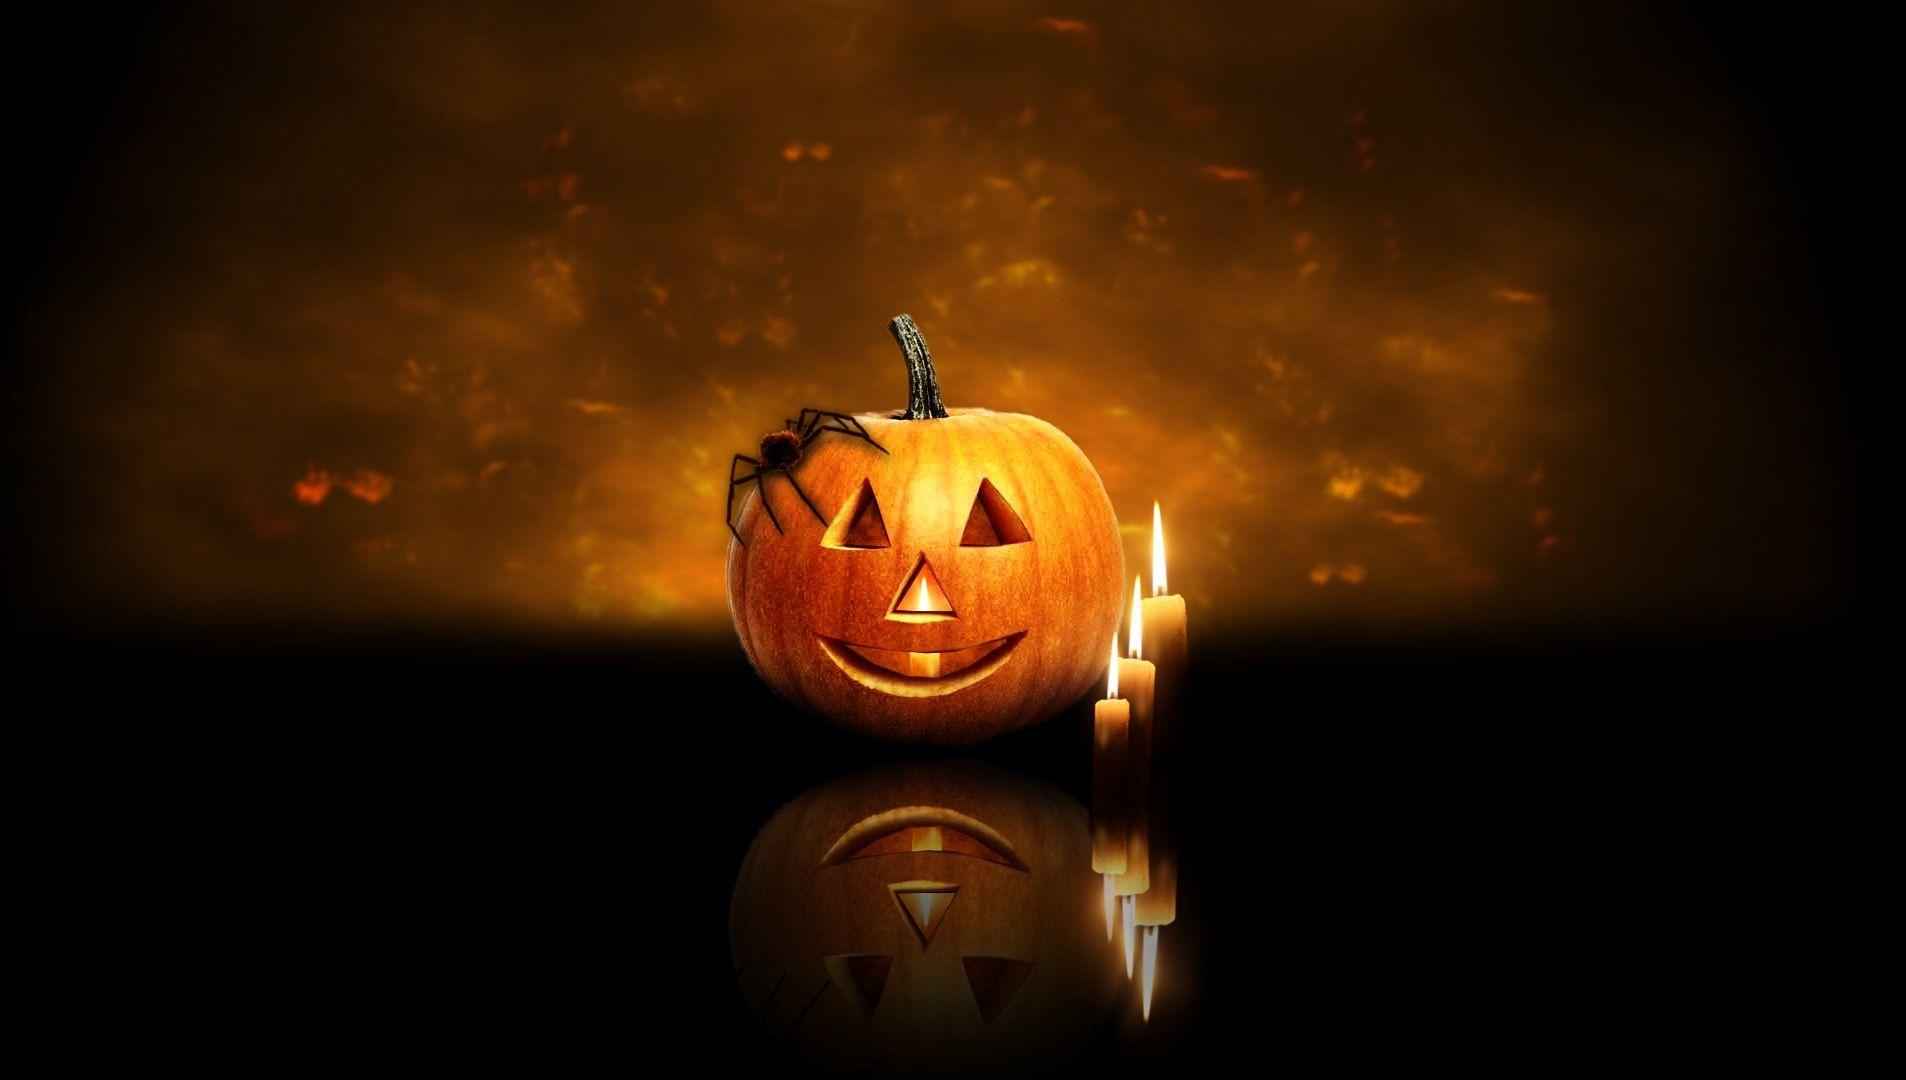 Halloween Pumpkin and Candles Free Stock Photo and Wallpapers